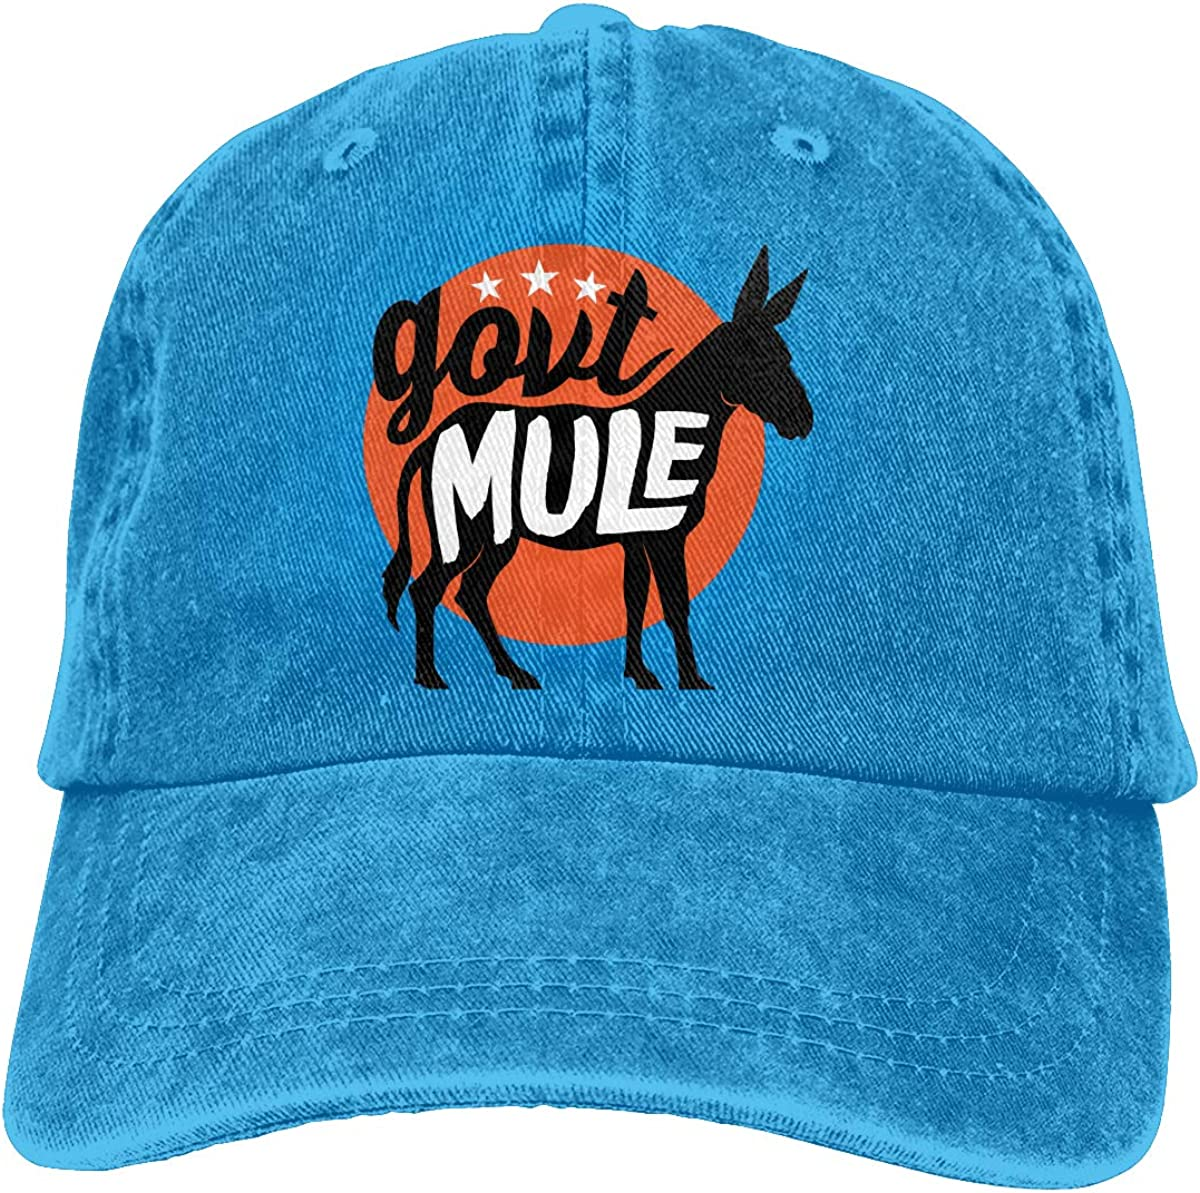 Govt Mule Unisex Popular Casquette Hat Vintage Adjustable Music Band Baseball Caps Black